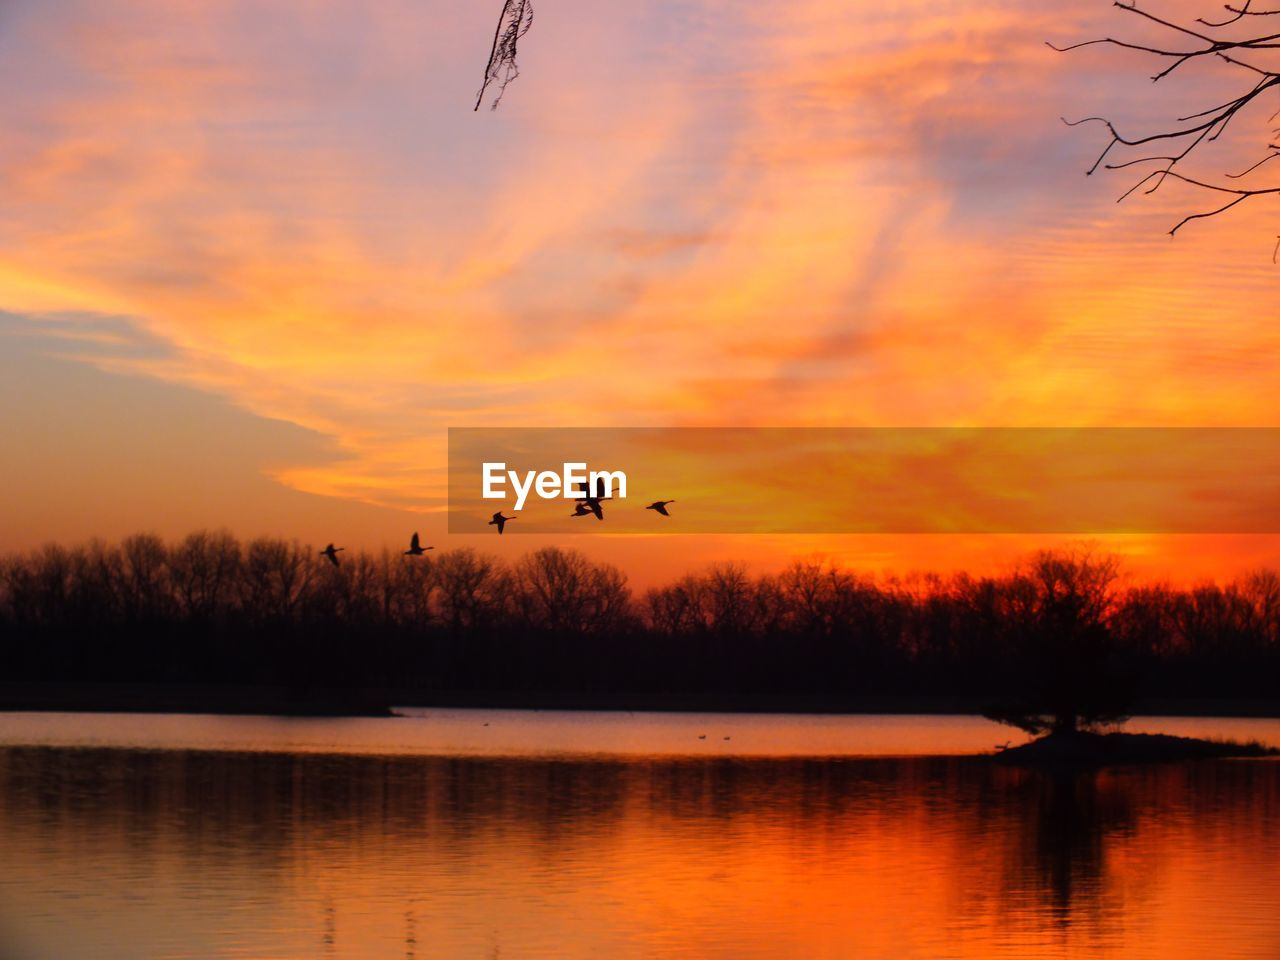 flying, sunset, animal themes, animals in the wild, mid-air, tree, orange color, nature, bird, lake, silhouette, reflection, sky, beauty in nature, one animal, animal wildlife, water, tranquil scene, scenics, outdoors, waterfront, no people, bare tree, spread wings, day